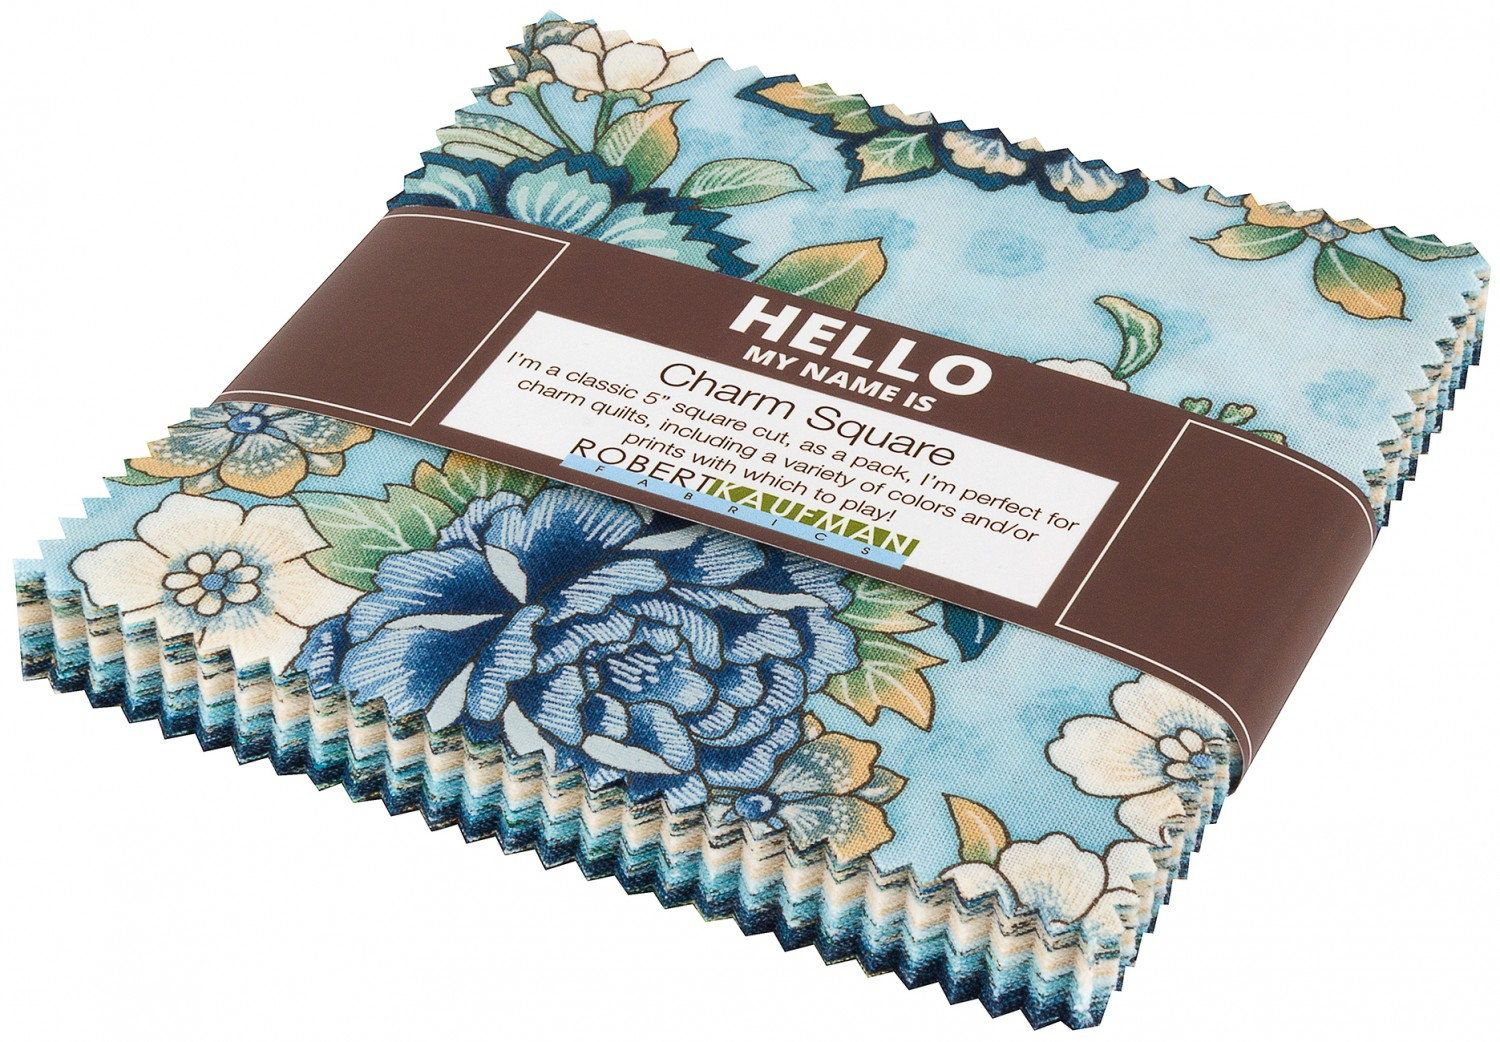 Calista Teal Charm Pack Chs 770 42 Pearlilzed Fabric Charm Pack 5 Inch Precut Fabric Squares R Precut Fabric Squares Cotton Quilting Fabric Classic Quilts